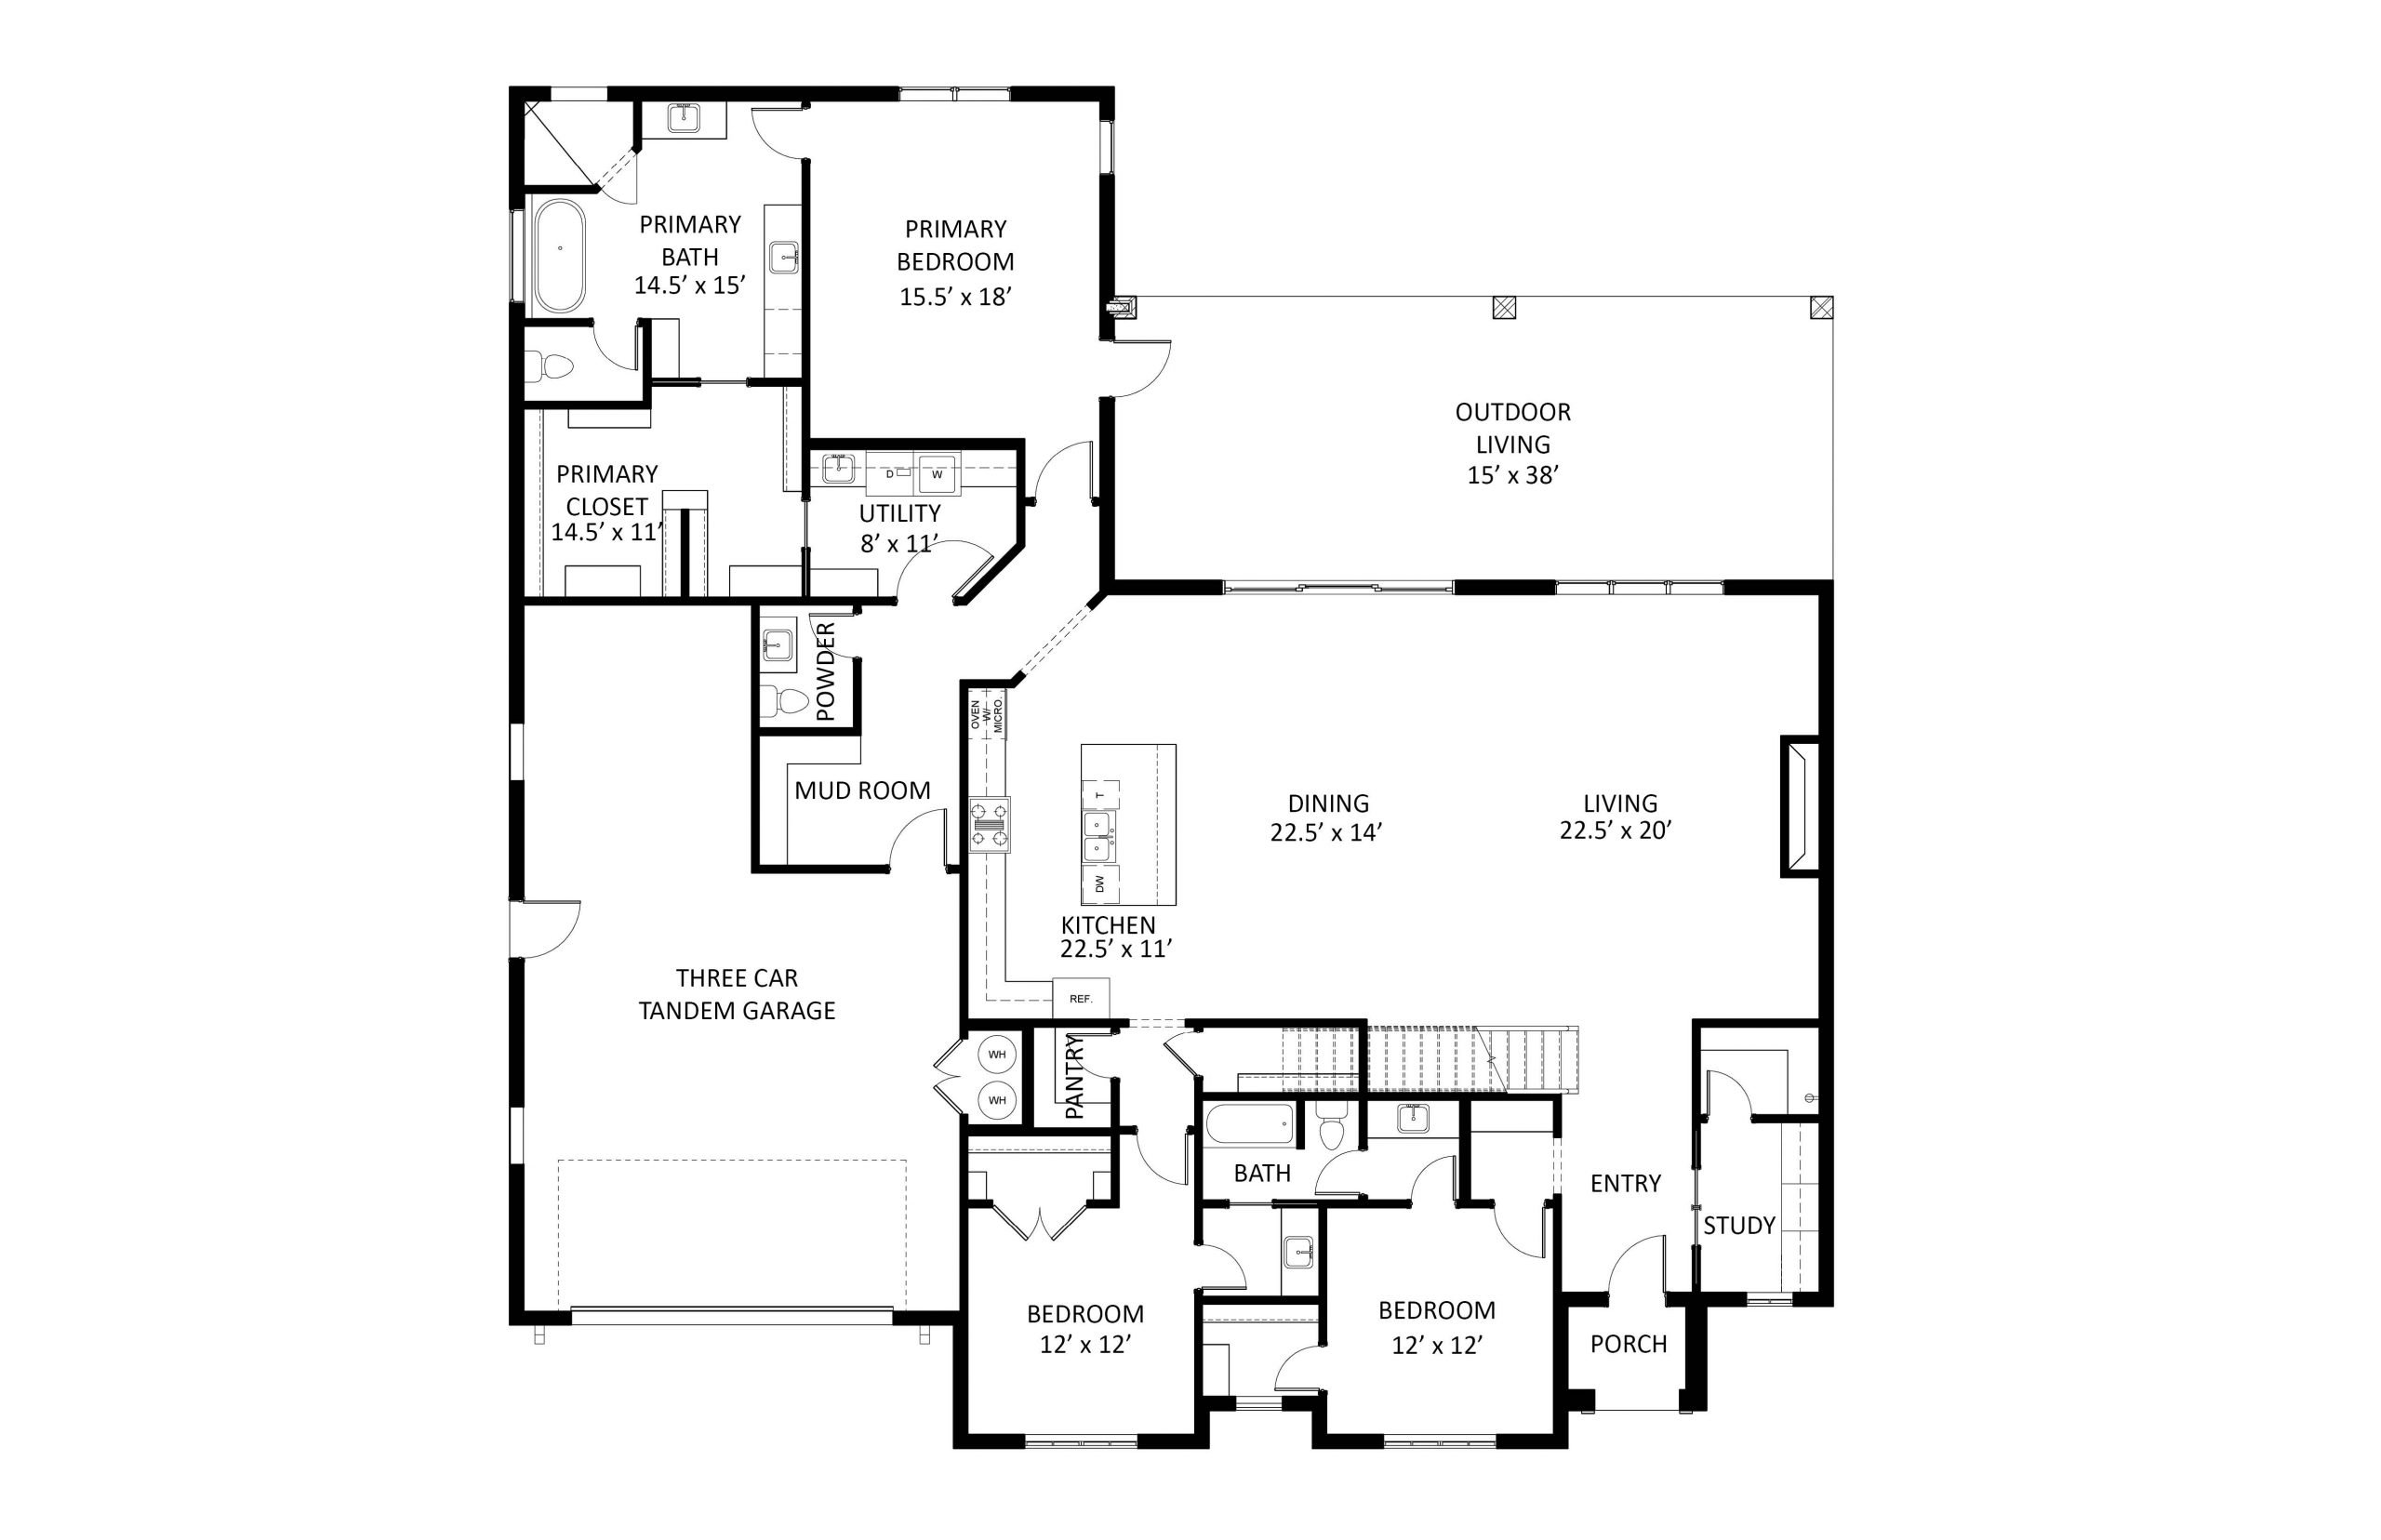 3009 Gold Finch Floorplan Labeled